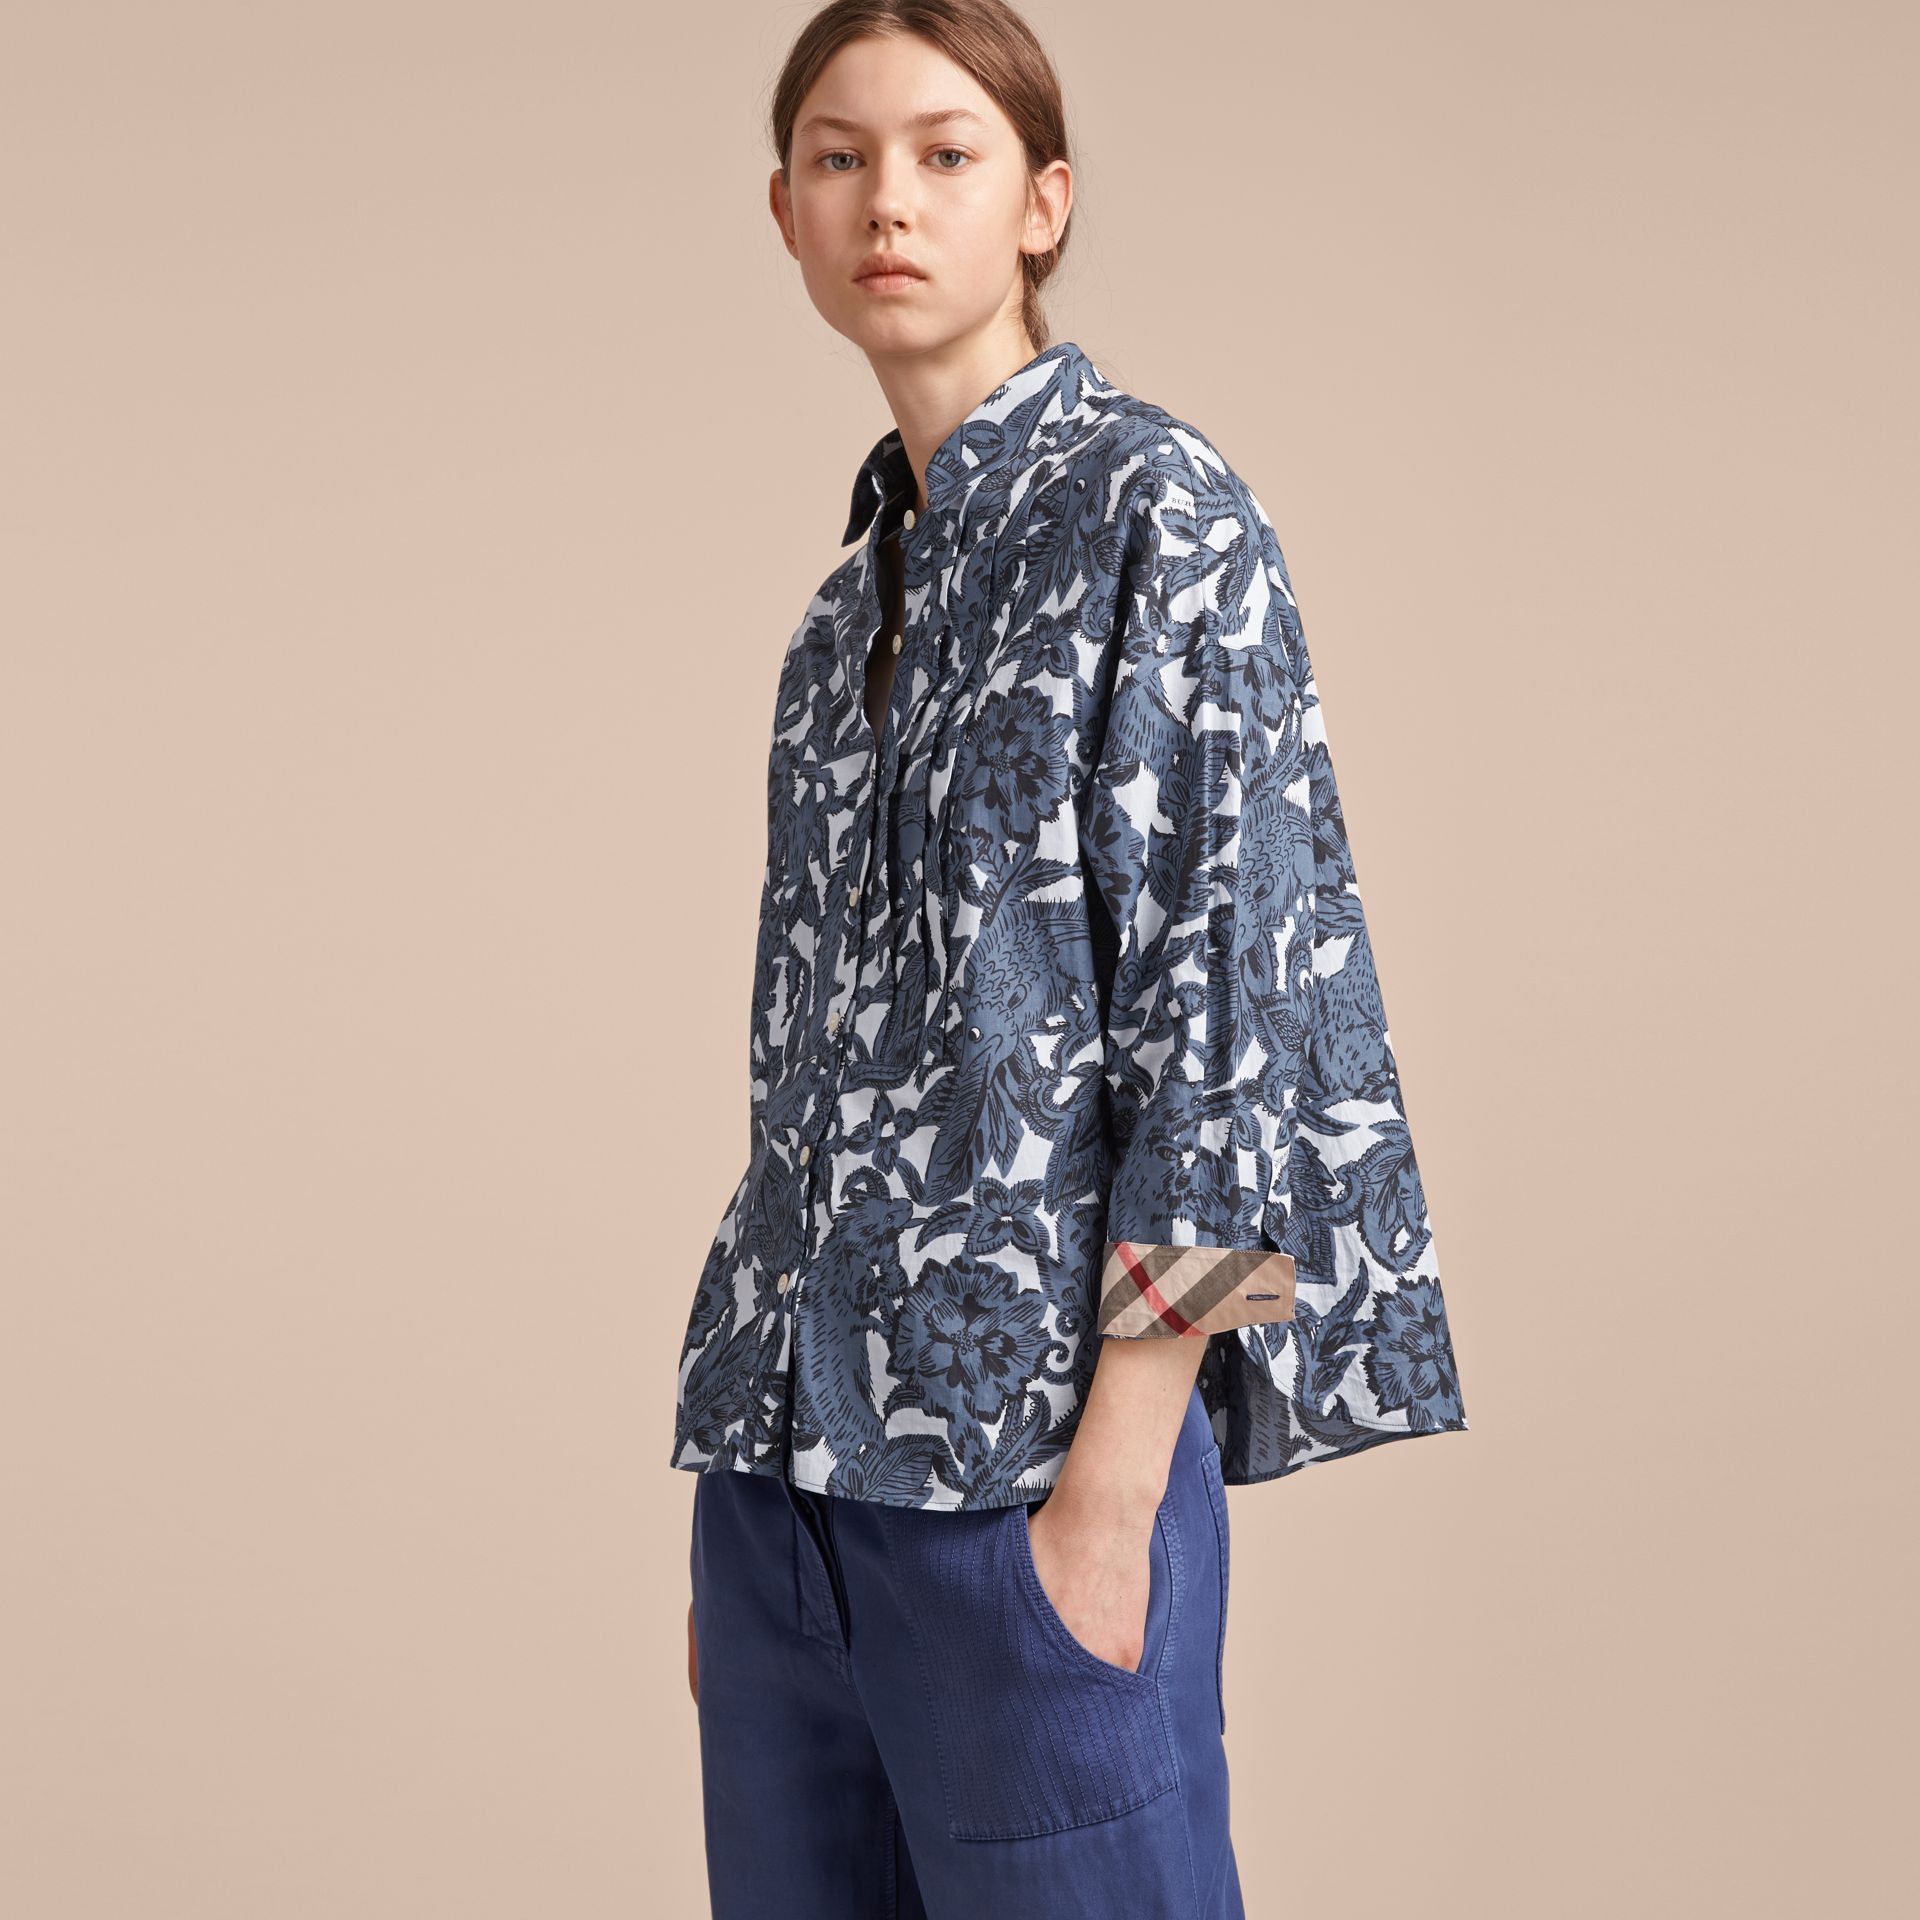 Pleated Bib Beasts Print Cotton Shirt in Stone Blue - Women | Burberry Australia - gallery image 6